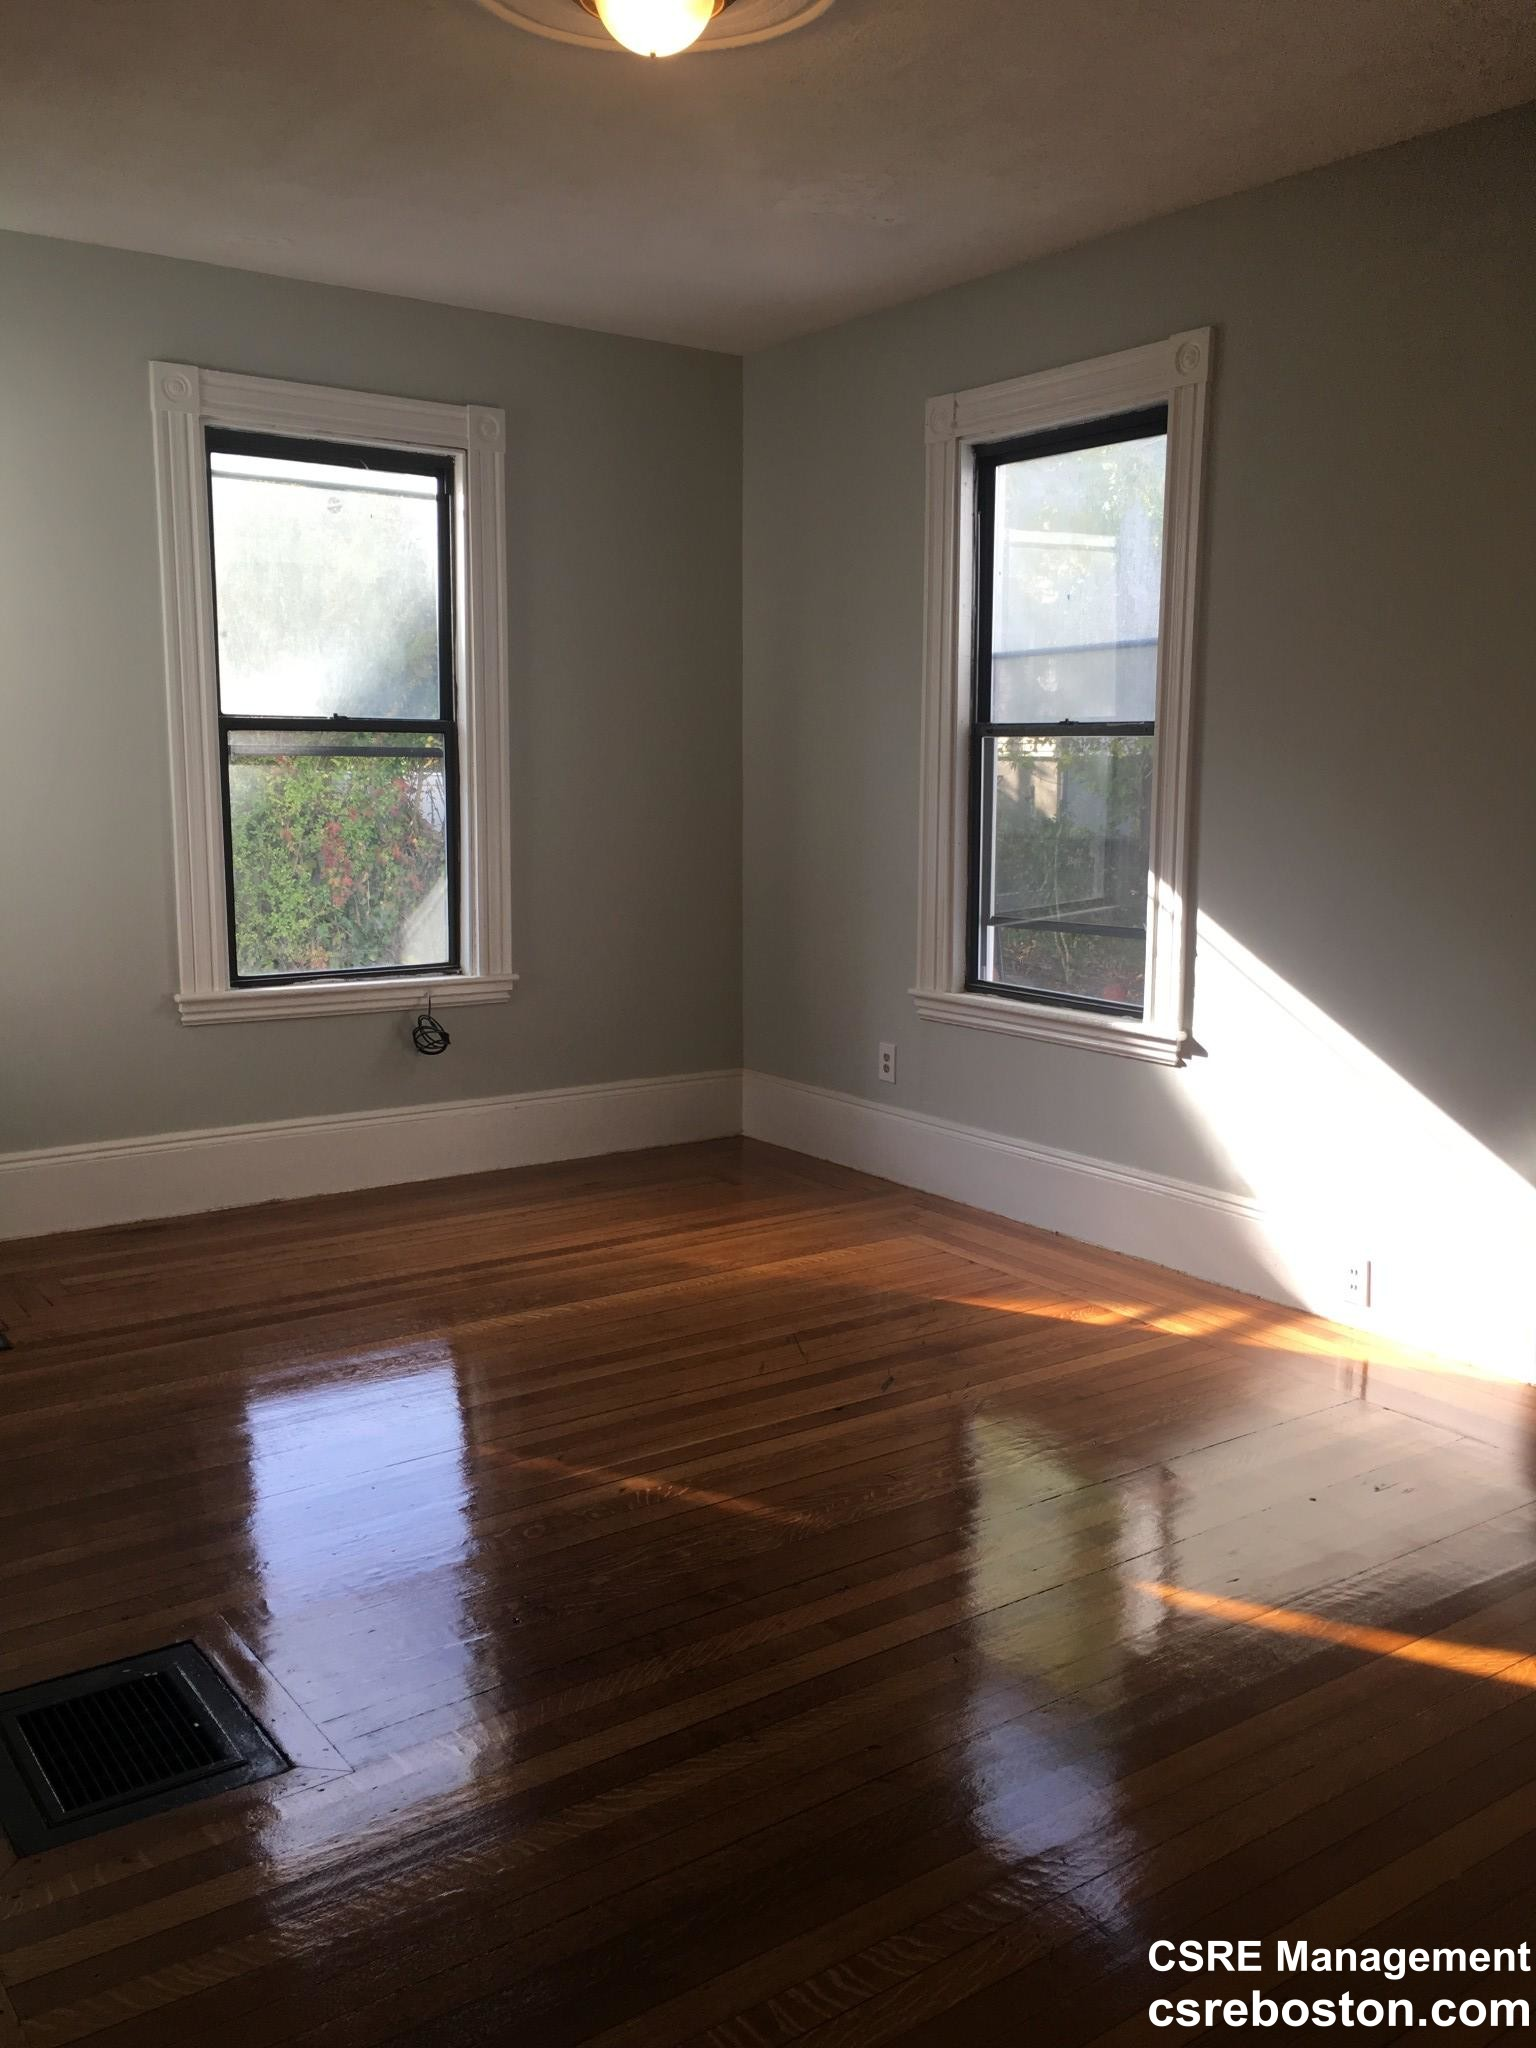 Pictures of  property for rent on Saunders St., Boston, MA 02134